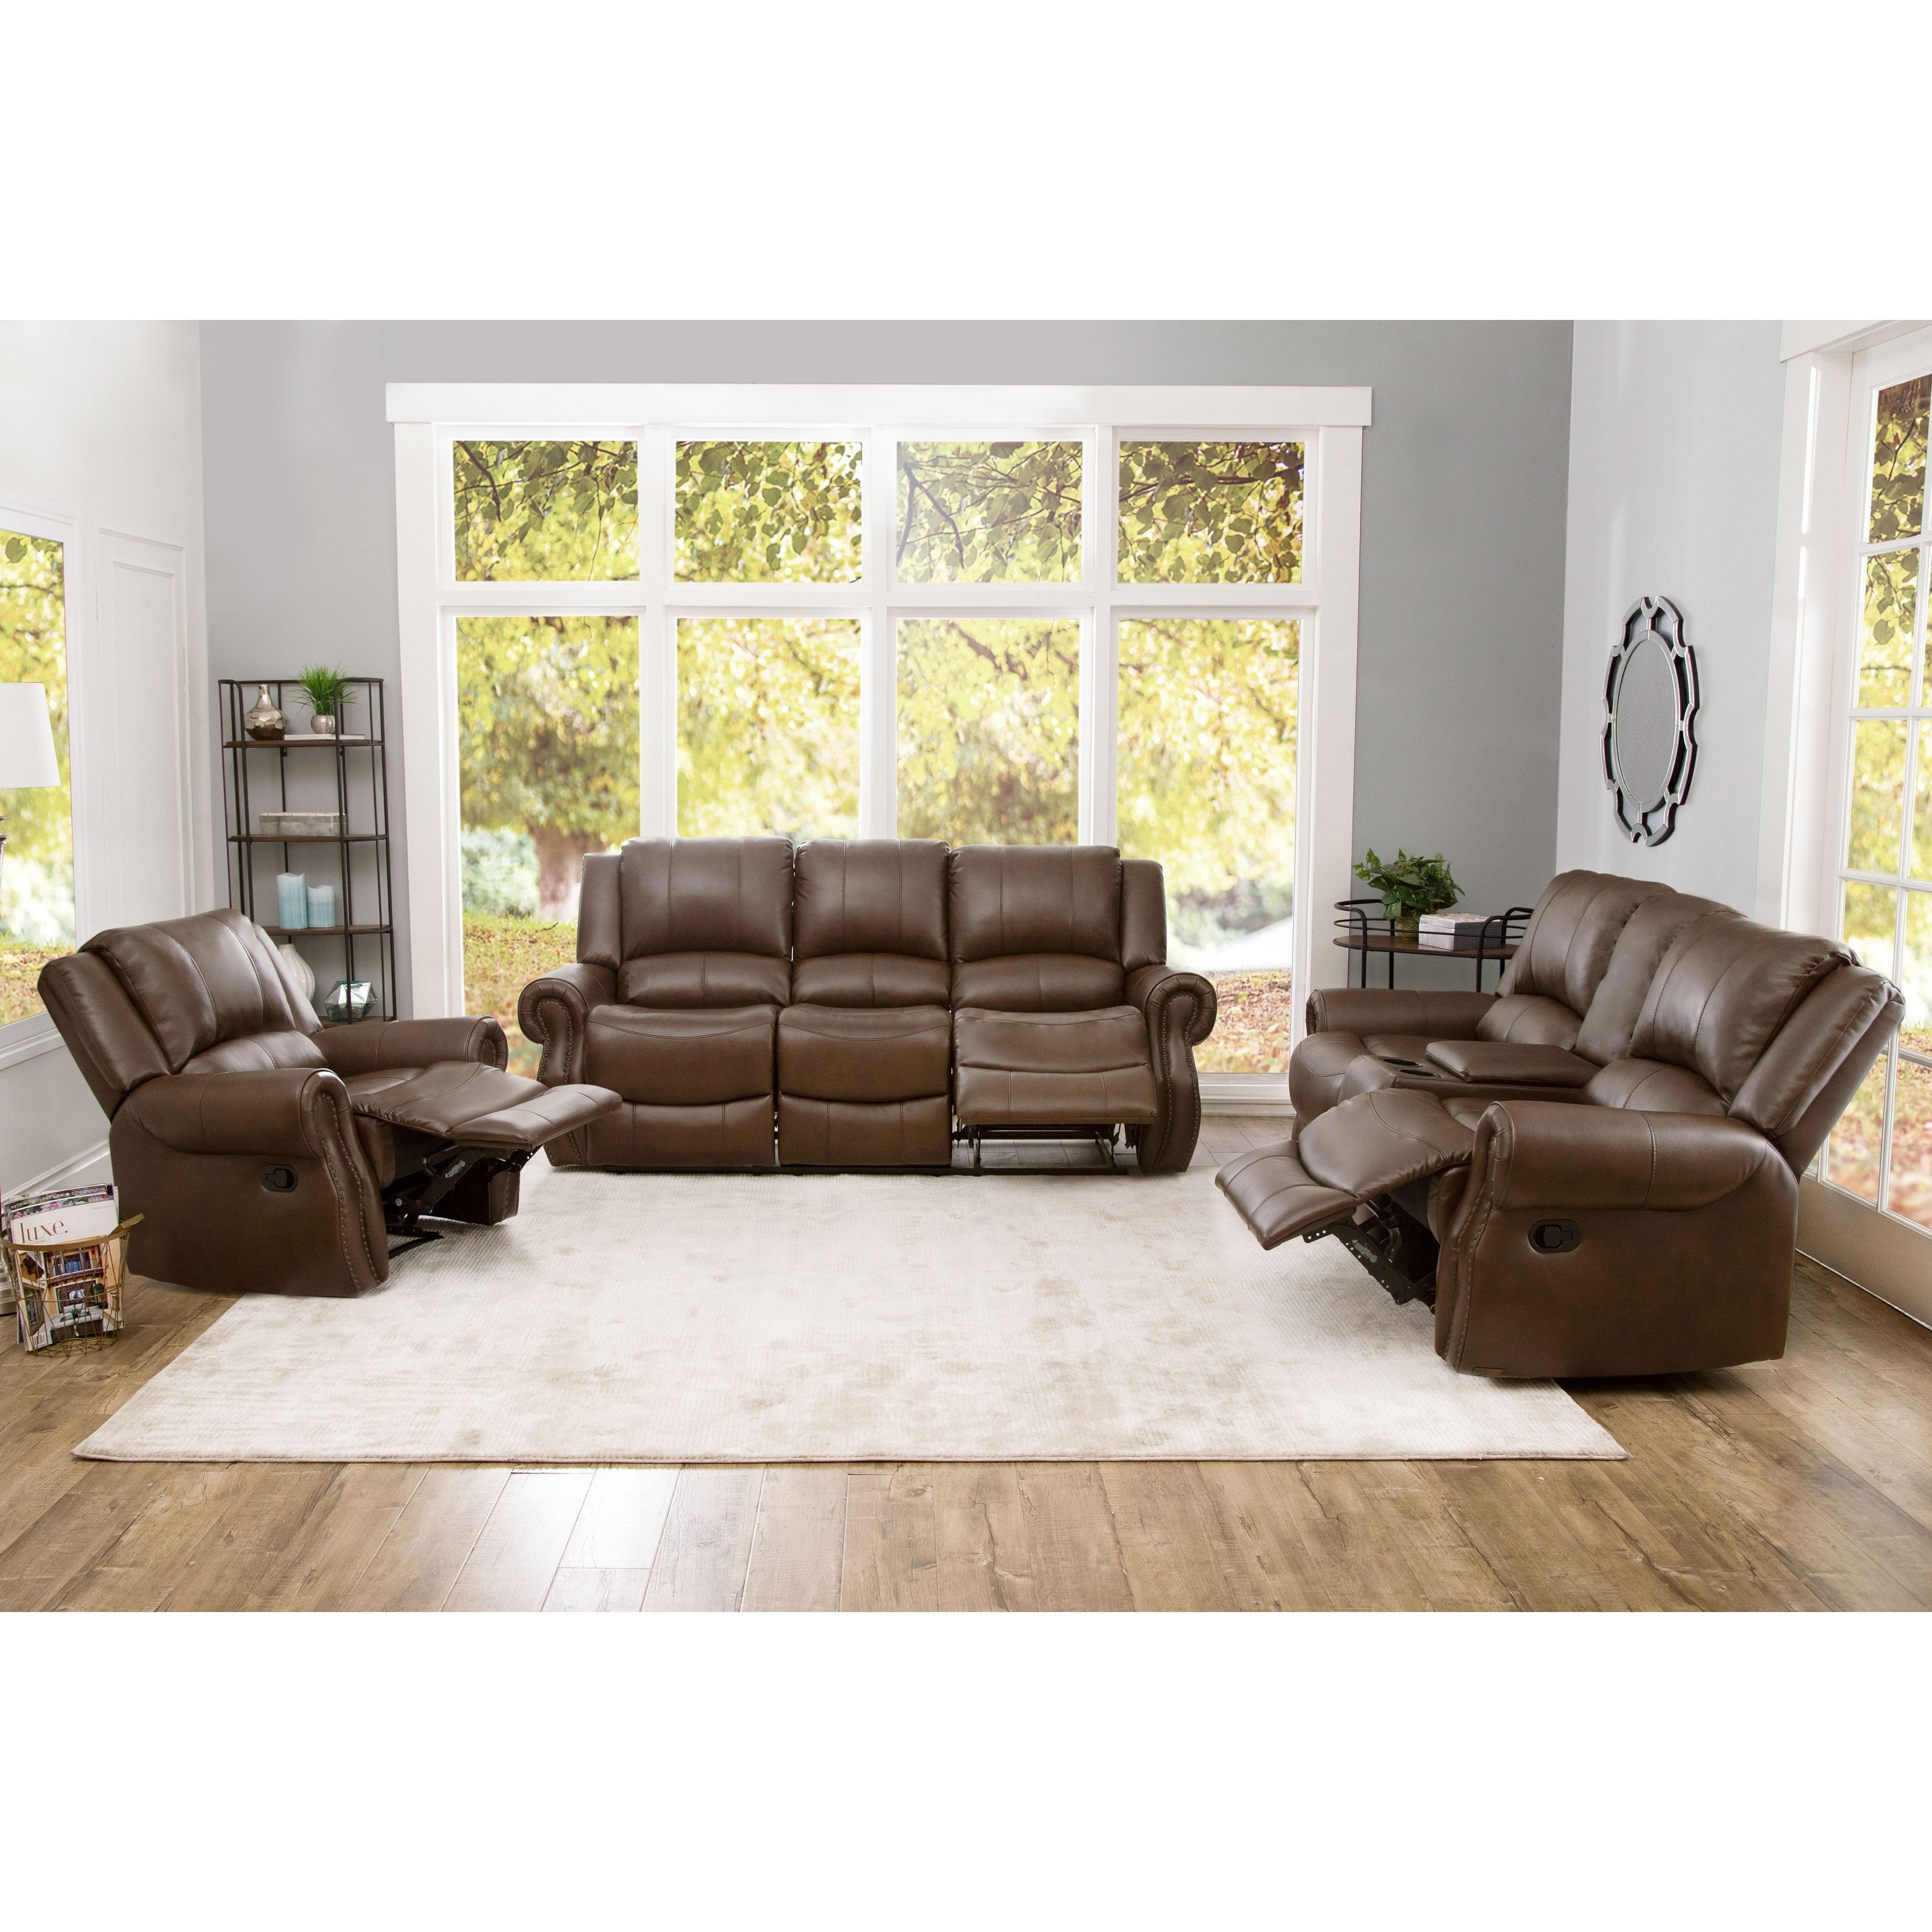 Abson Calabasas Mesa Brown Leather 3 Piece Reclining Living Room Set regarding 12 Awesome Concepts of How to Improve Living Room Set 3 Piece